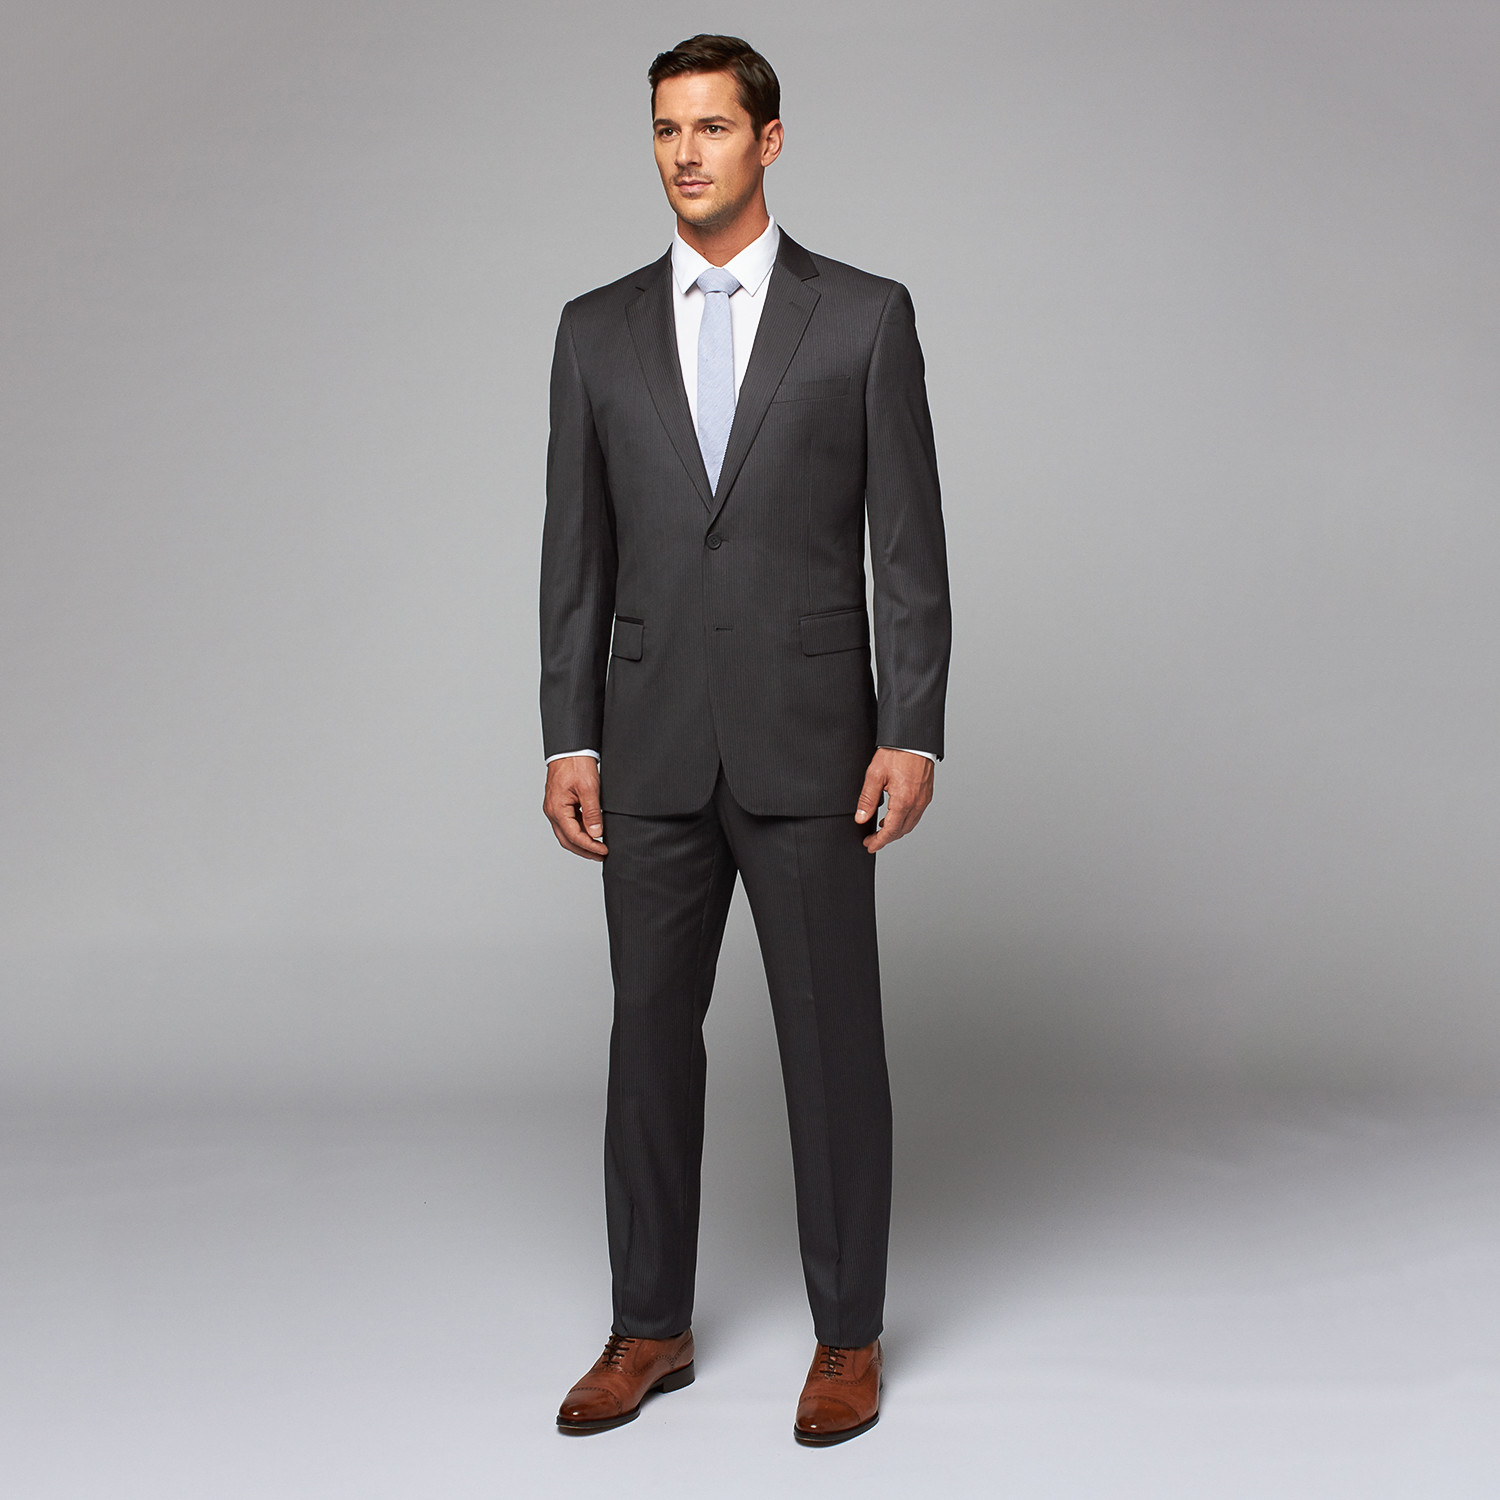 I wear a 34R and the only place I can buy suits that fit me is H&M. H&M carries 34R in most of their suits. Even though you are a 28 waist, the size 30 pants at H&M will fit correctly. H&M is a more European cut so it's the only store I can wear size